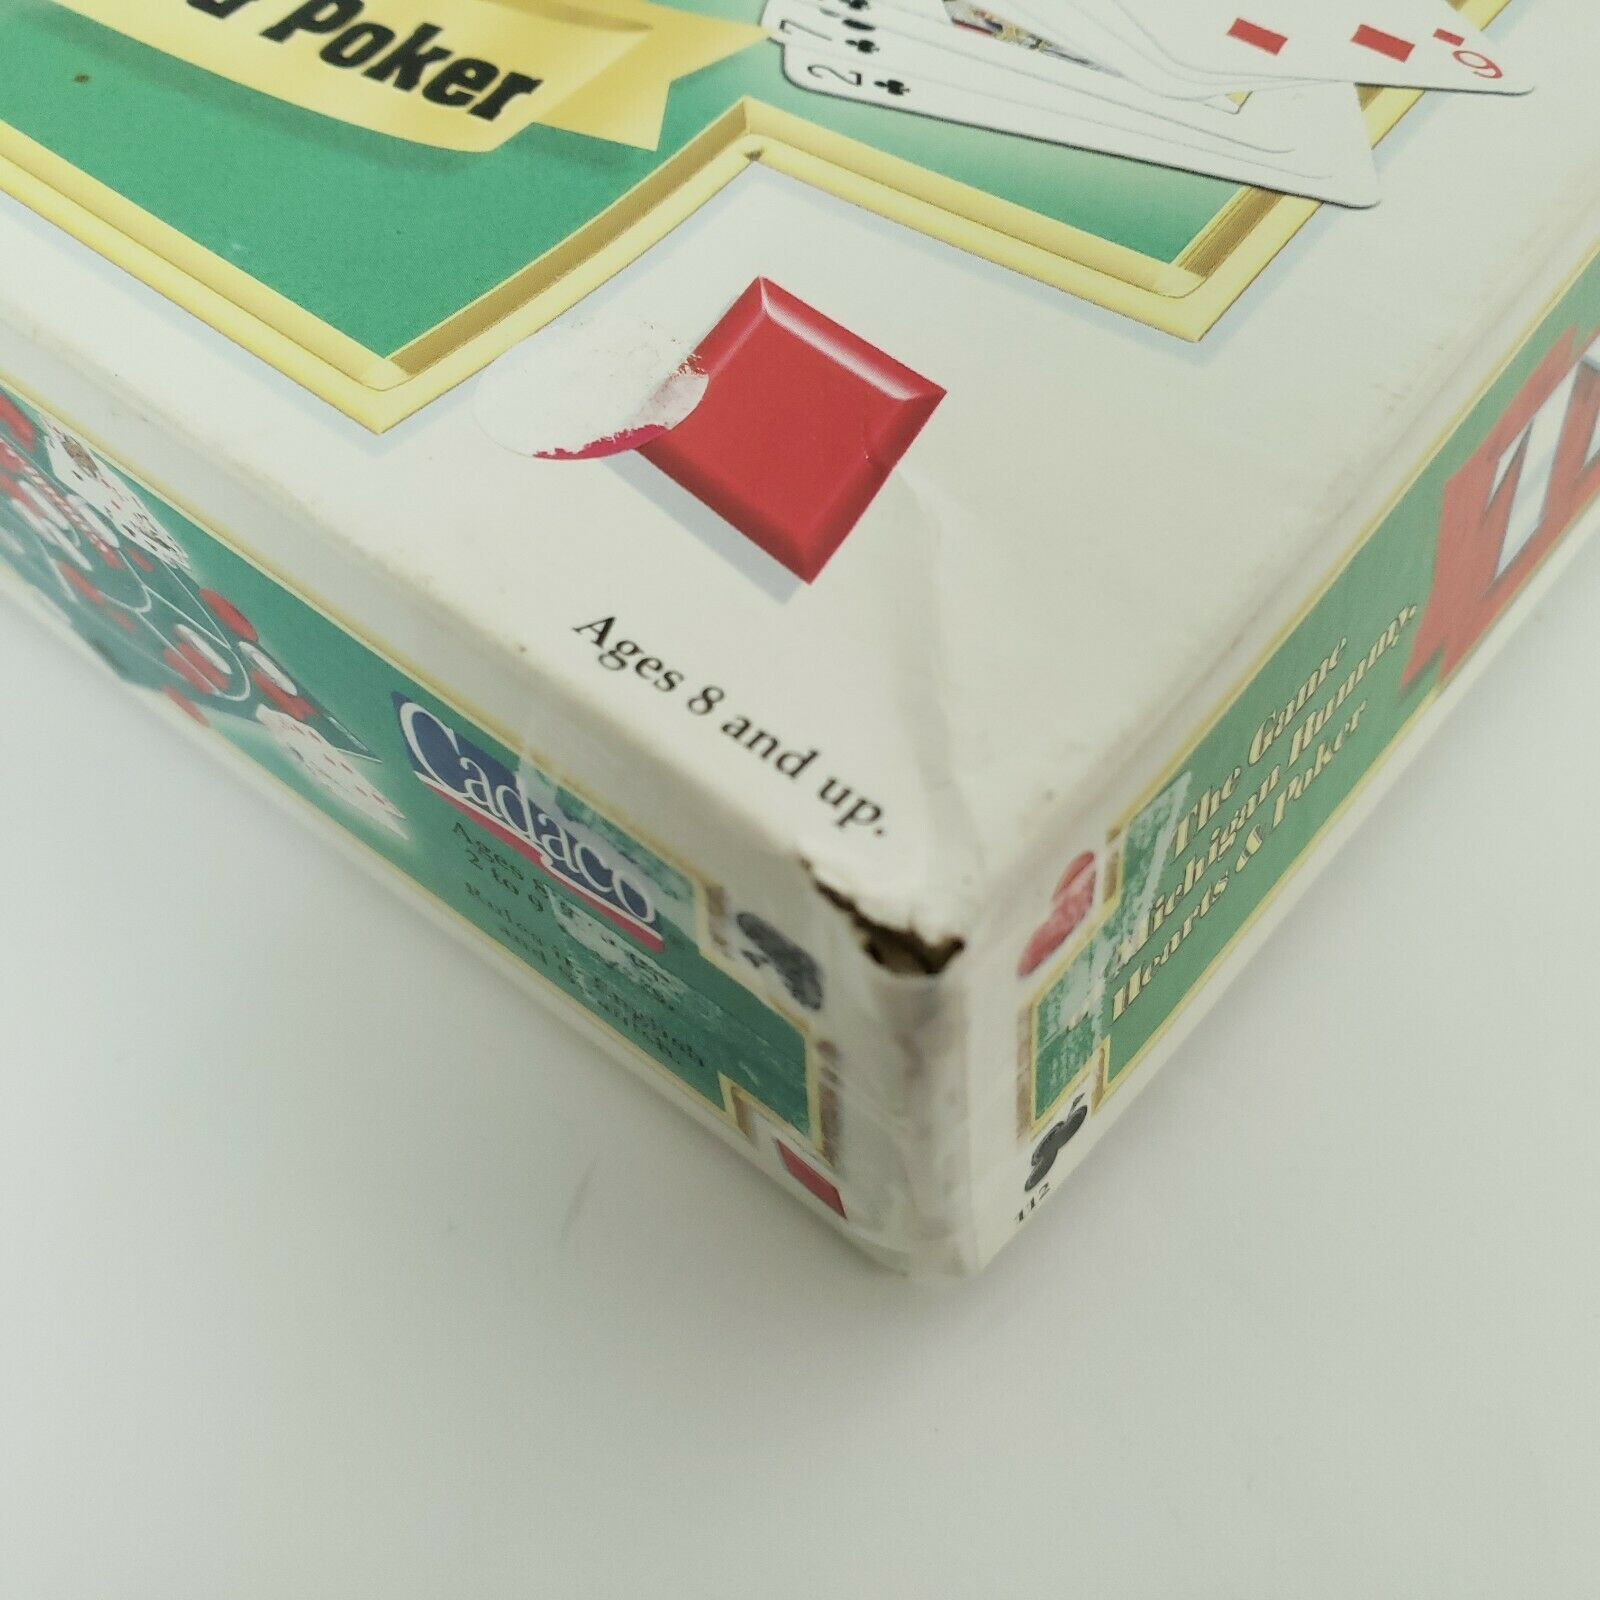 Tripoley Board Game Deluxe Mat Version Cadaco 2-9 Players Vintage 1999 Complete image 10